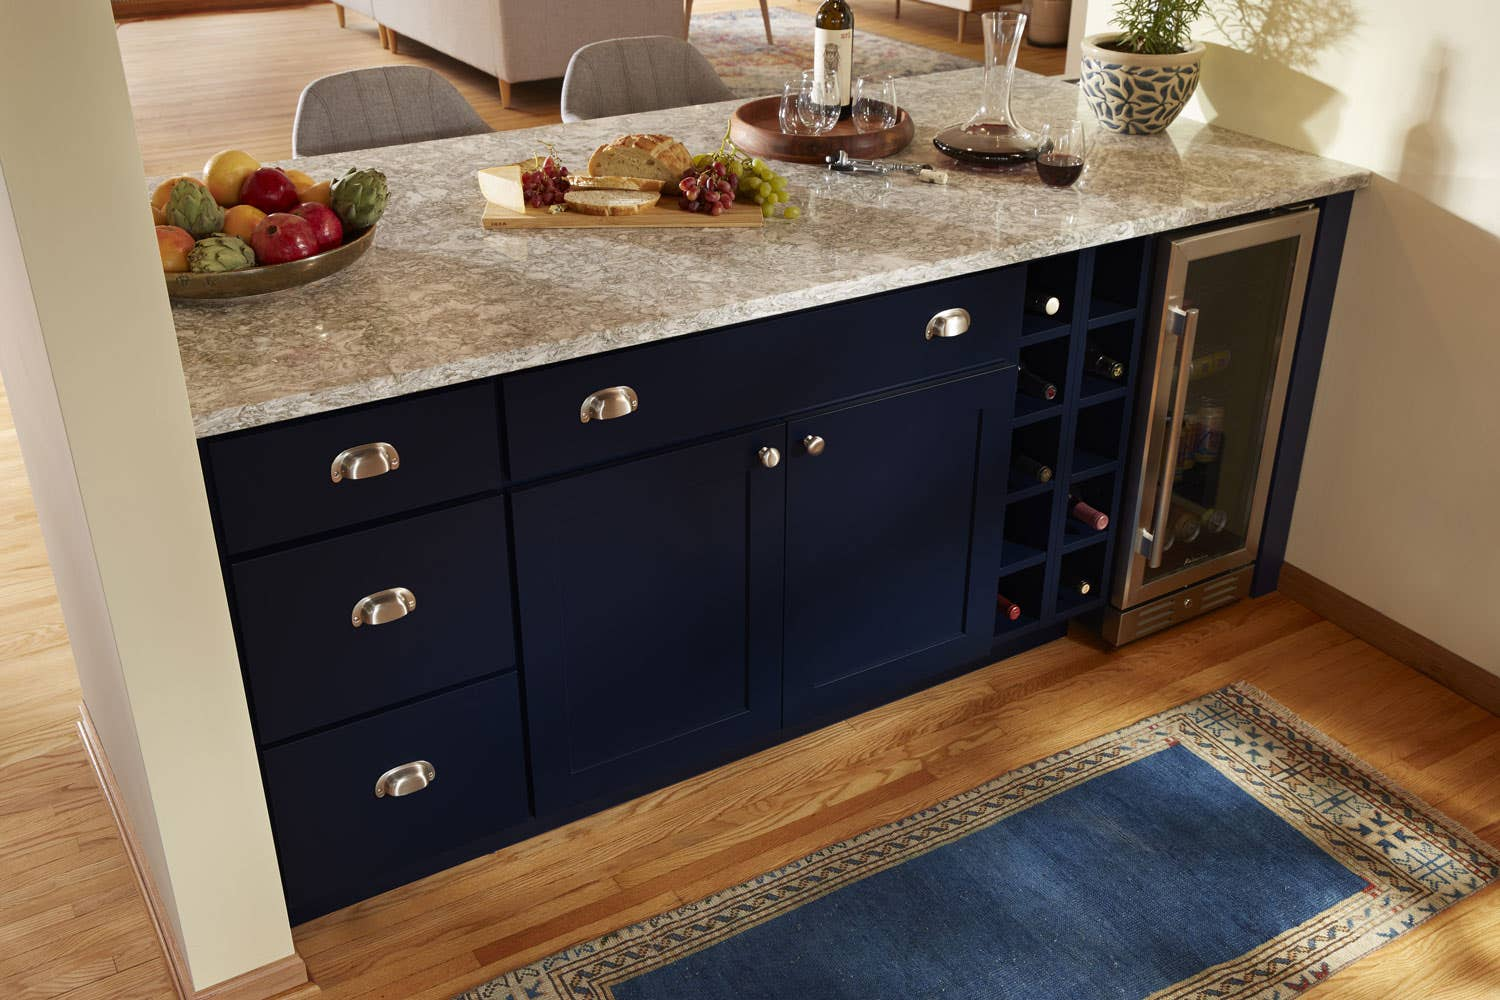 Matching cup pulls and knobs on navy cabinet.